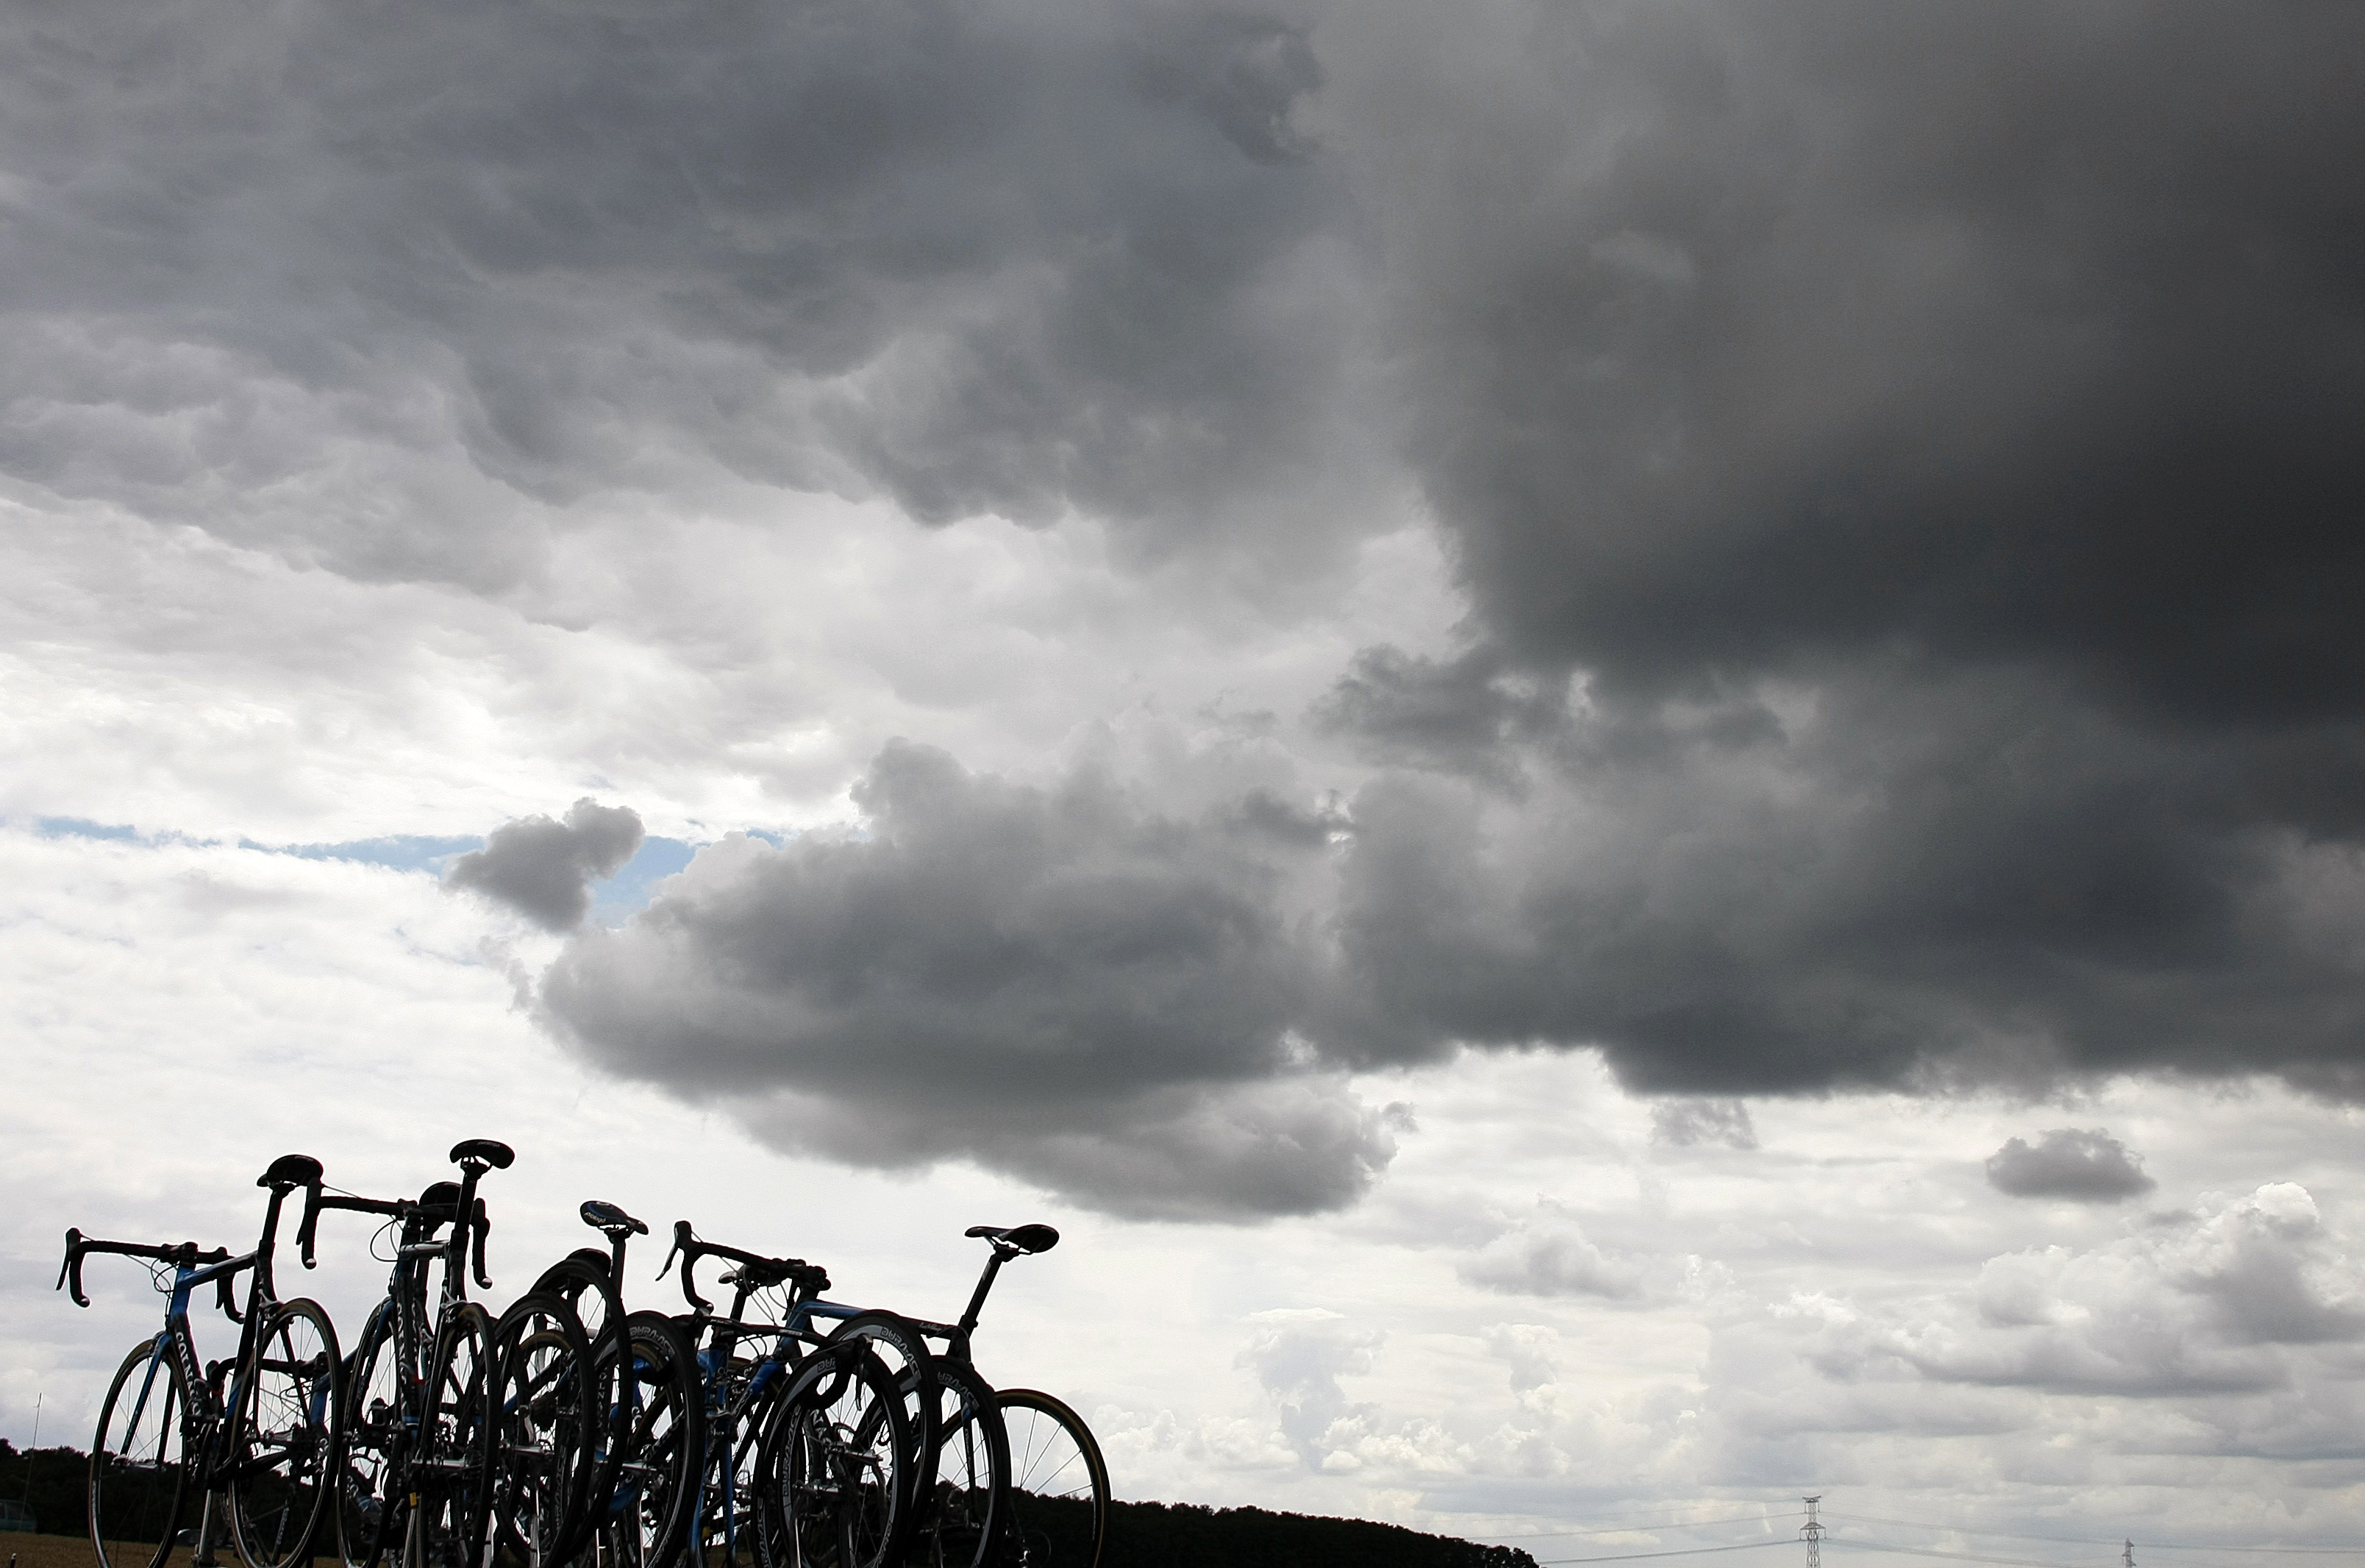 Bicycles are seen under storm clouds